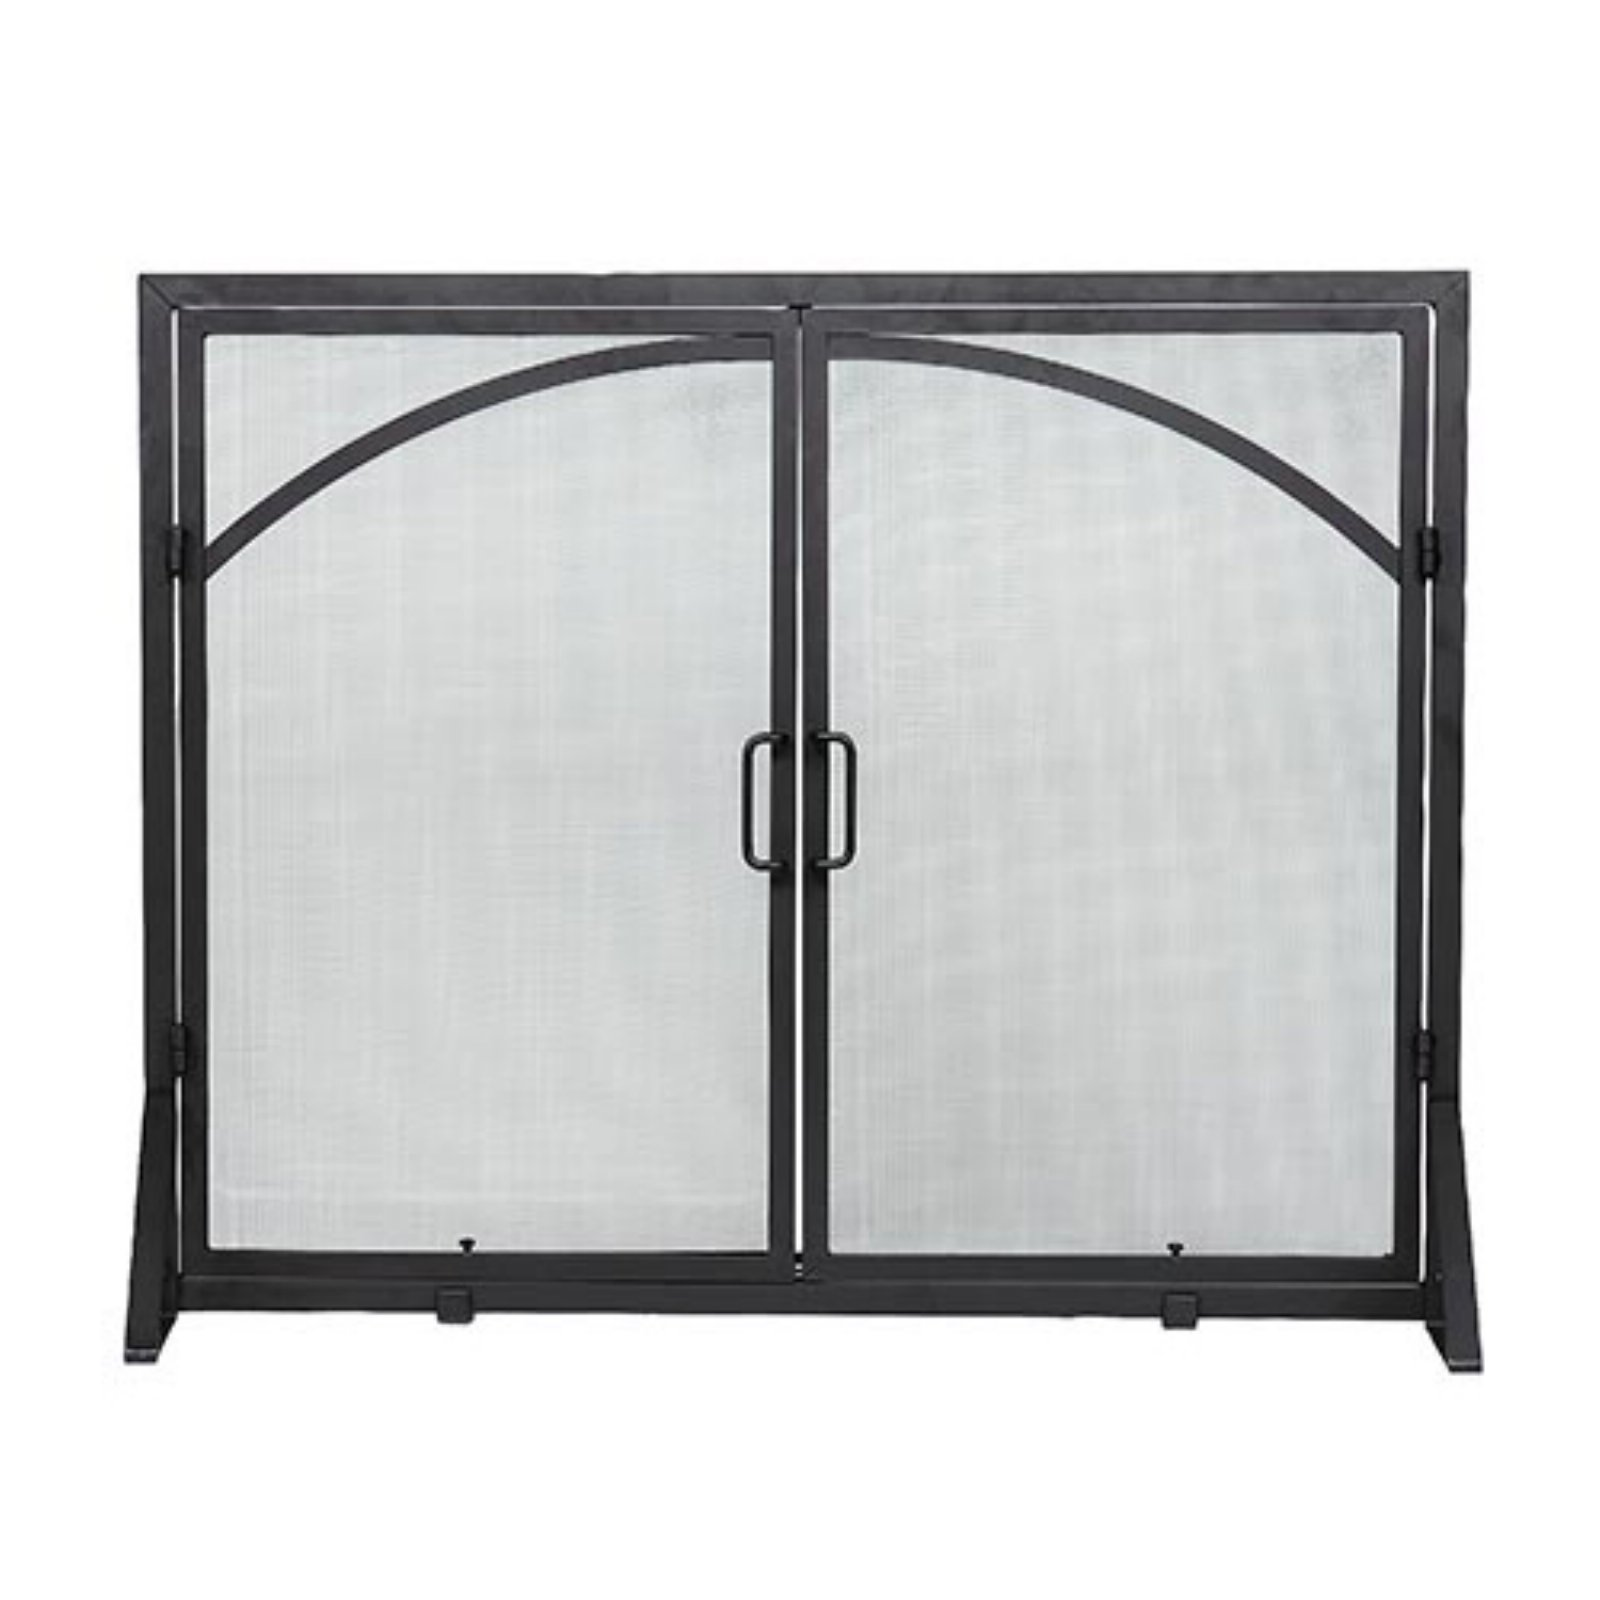 Minuteman International Black Arch Top Classic Flat Fireplace Screen with Doors